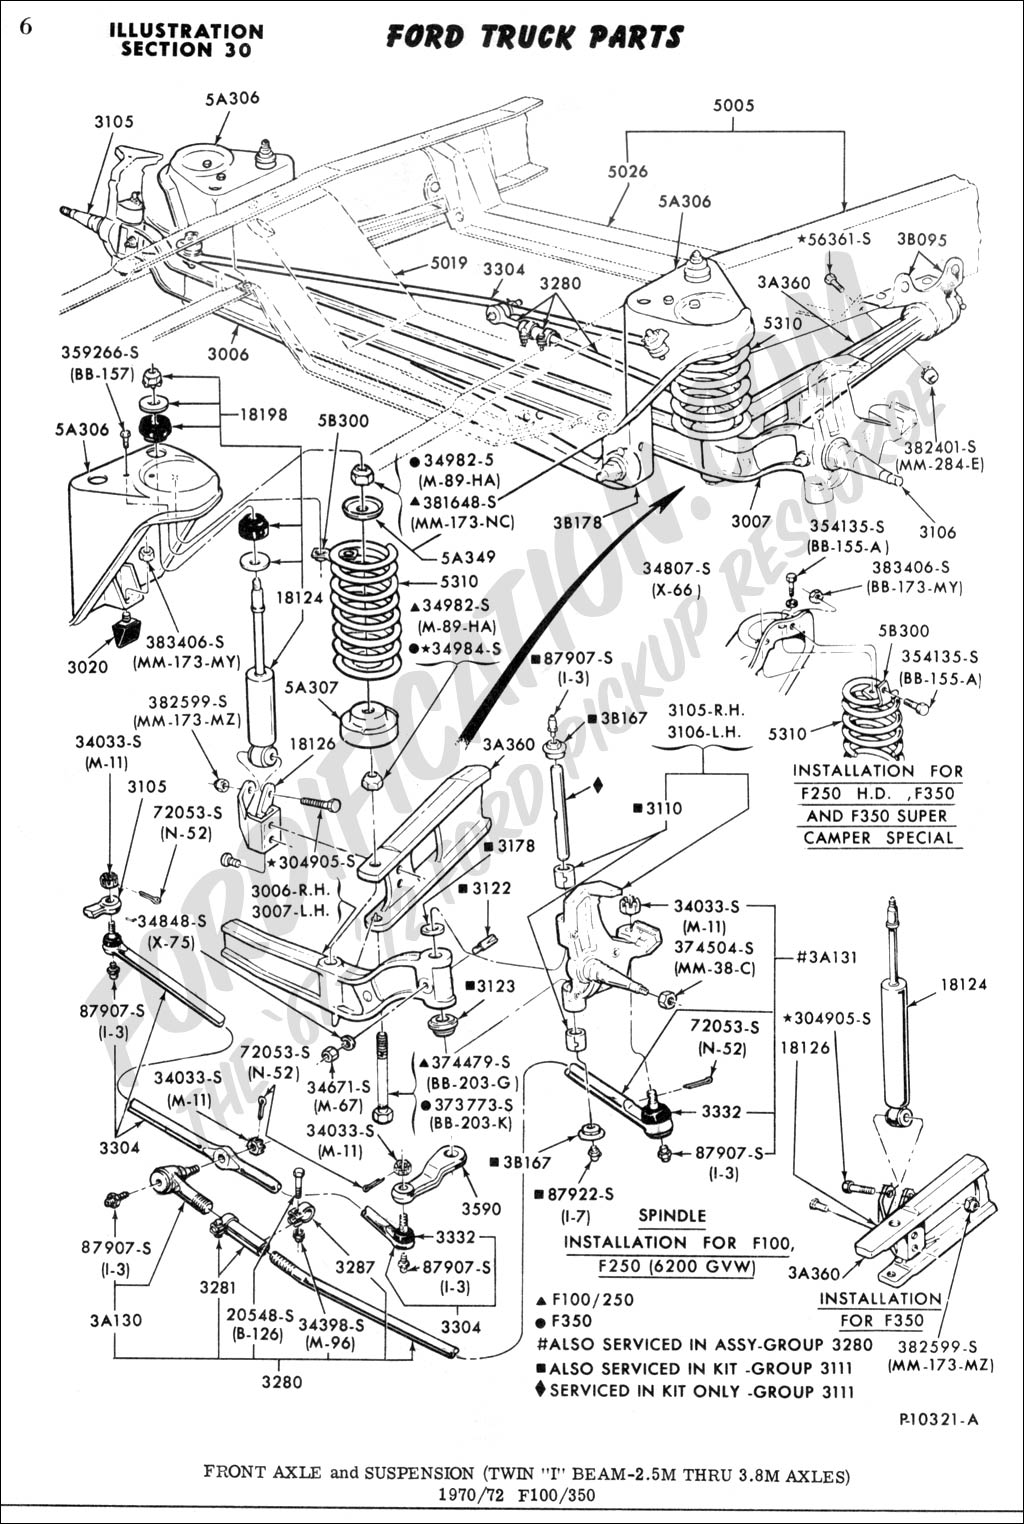 2006 Ford Explorer Front End Diagram Wiring Diagram And Ebooks